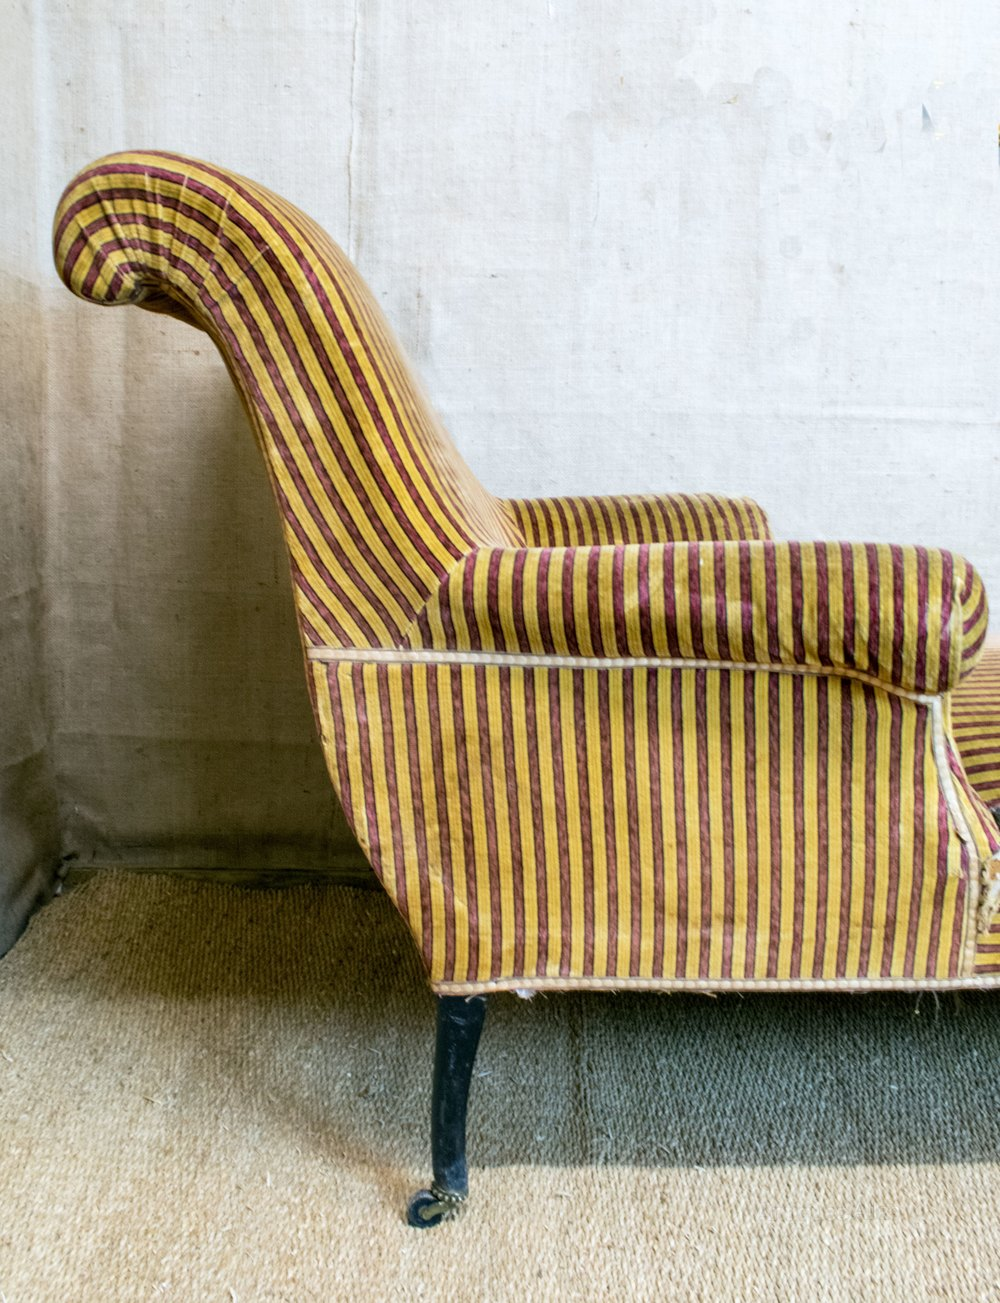 French chaise longue armchair style scroll arms for Antique chaise longue